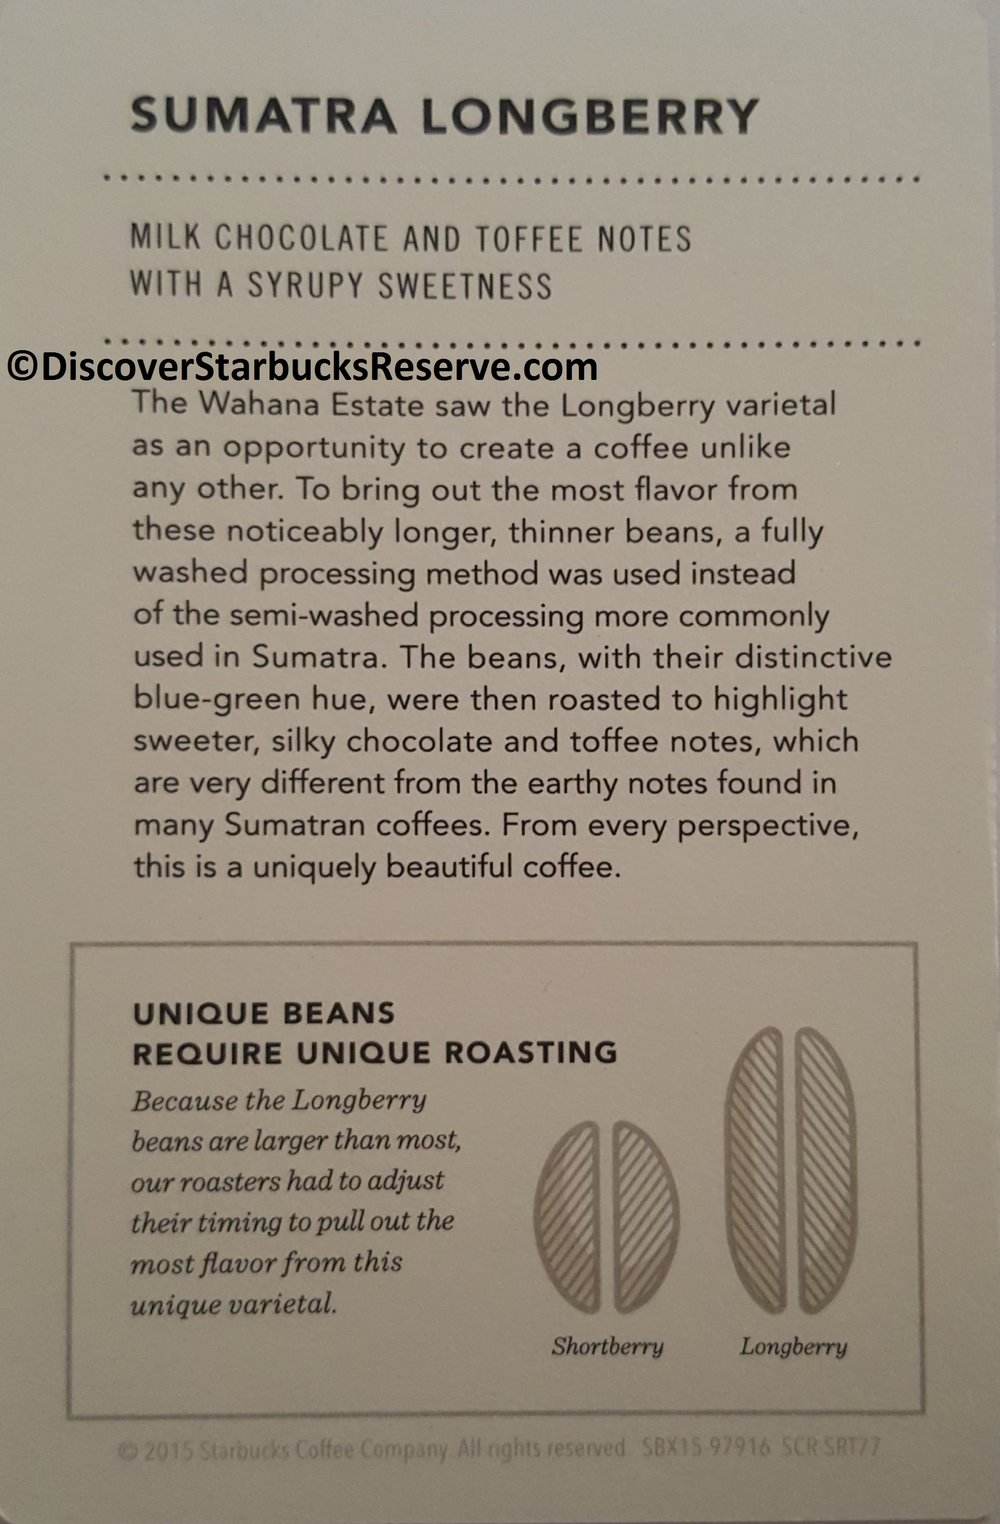 2 -1 - New Doc 40_1 back of Starbucks Sumatra Longberry card.jpg